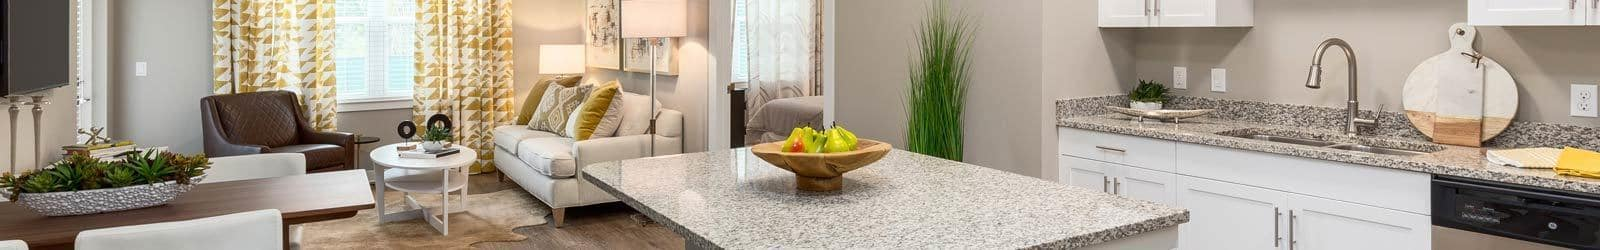 Luxury studio 1 2 bedroom apartments in sarasota fl - 1 bedroom apartments sarasota fl ...